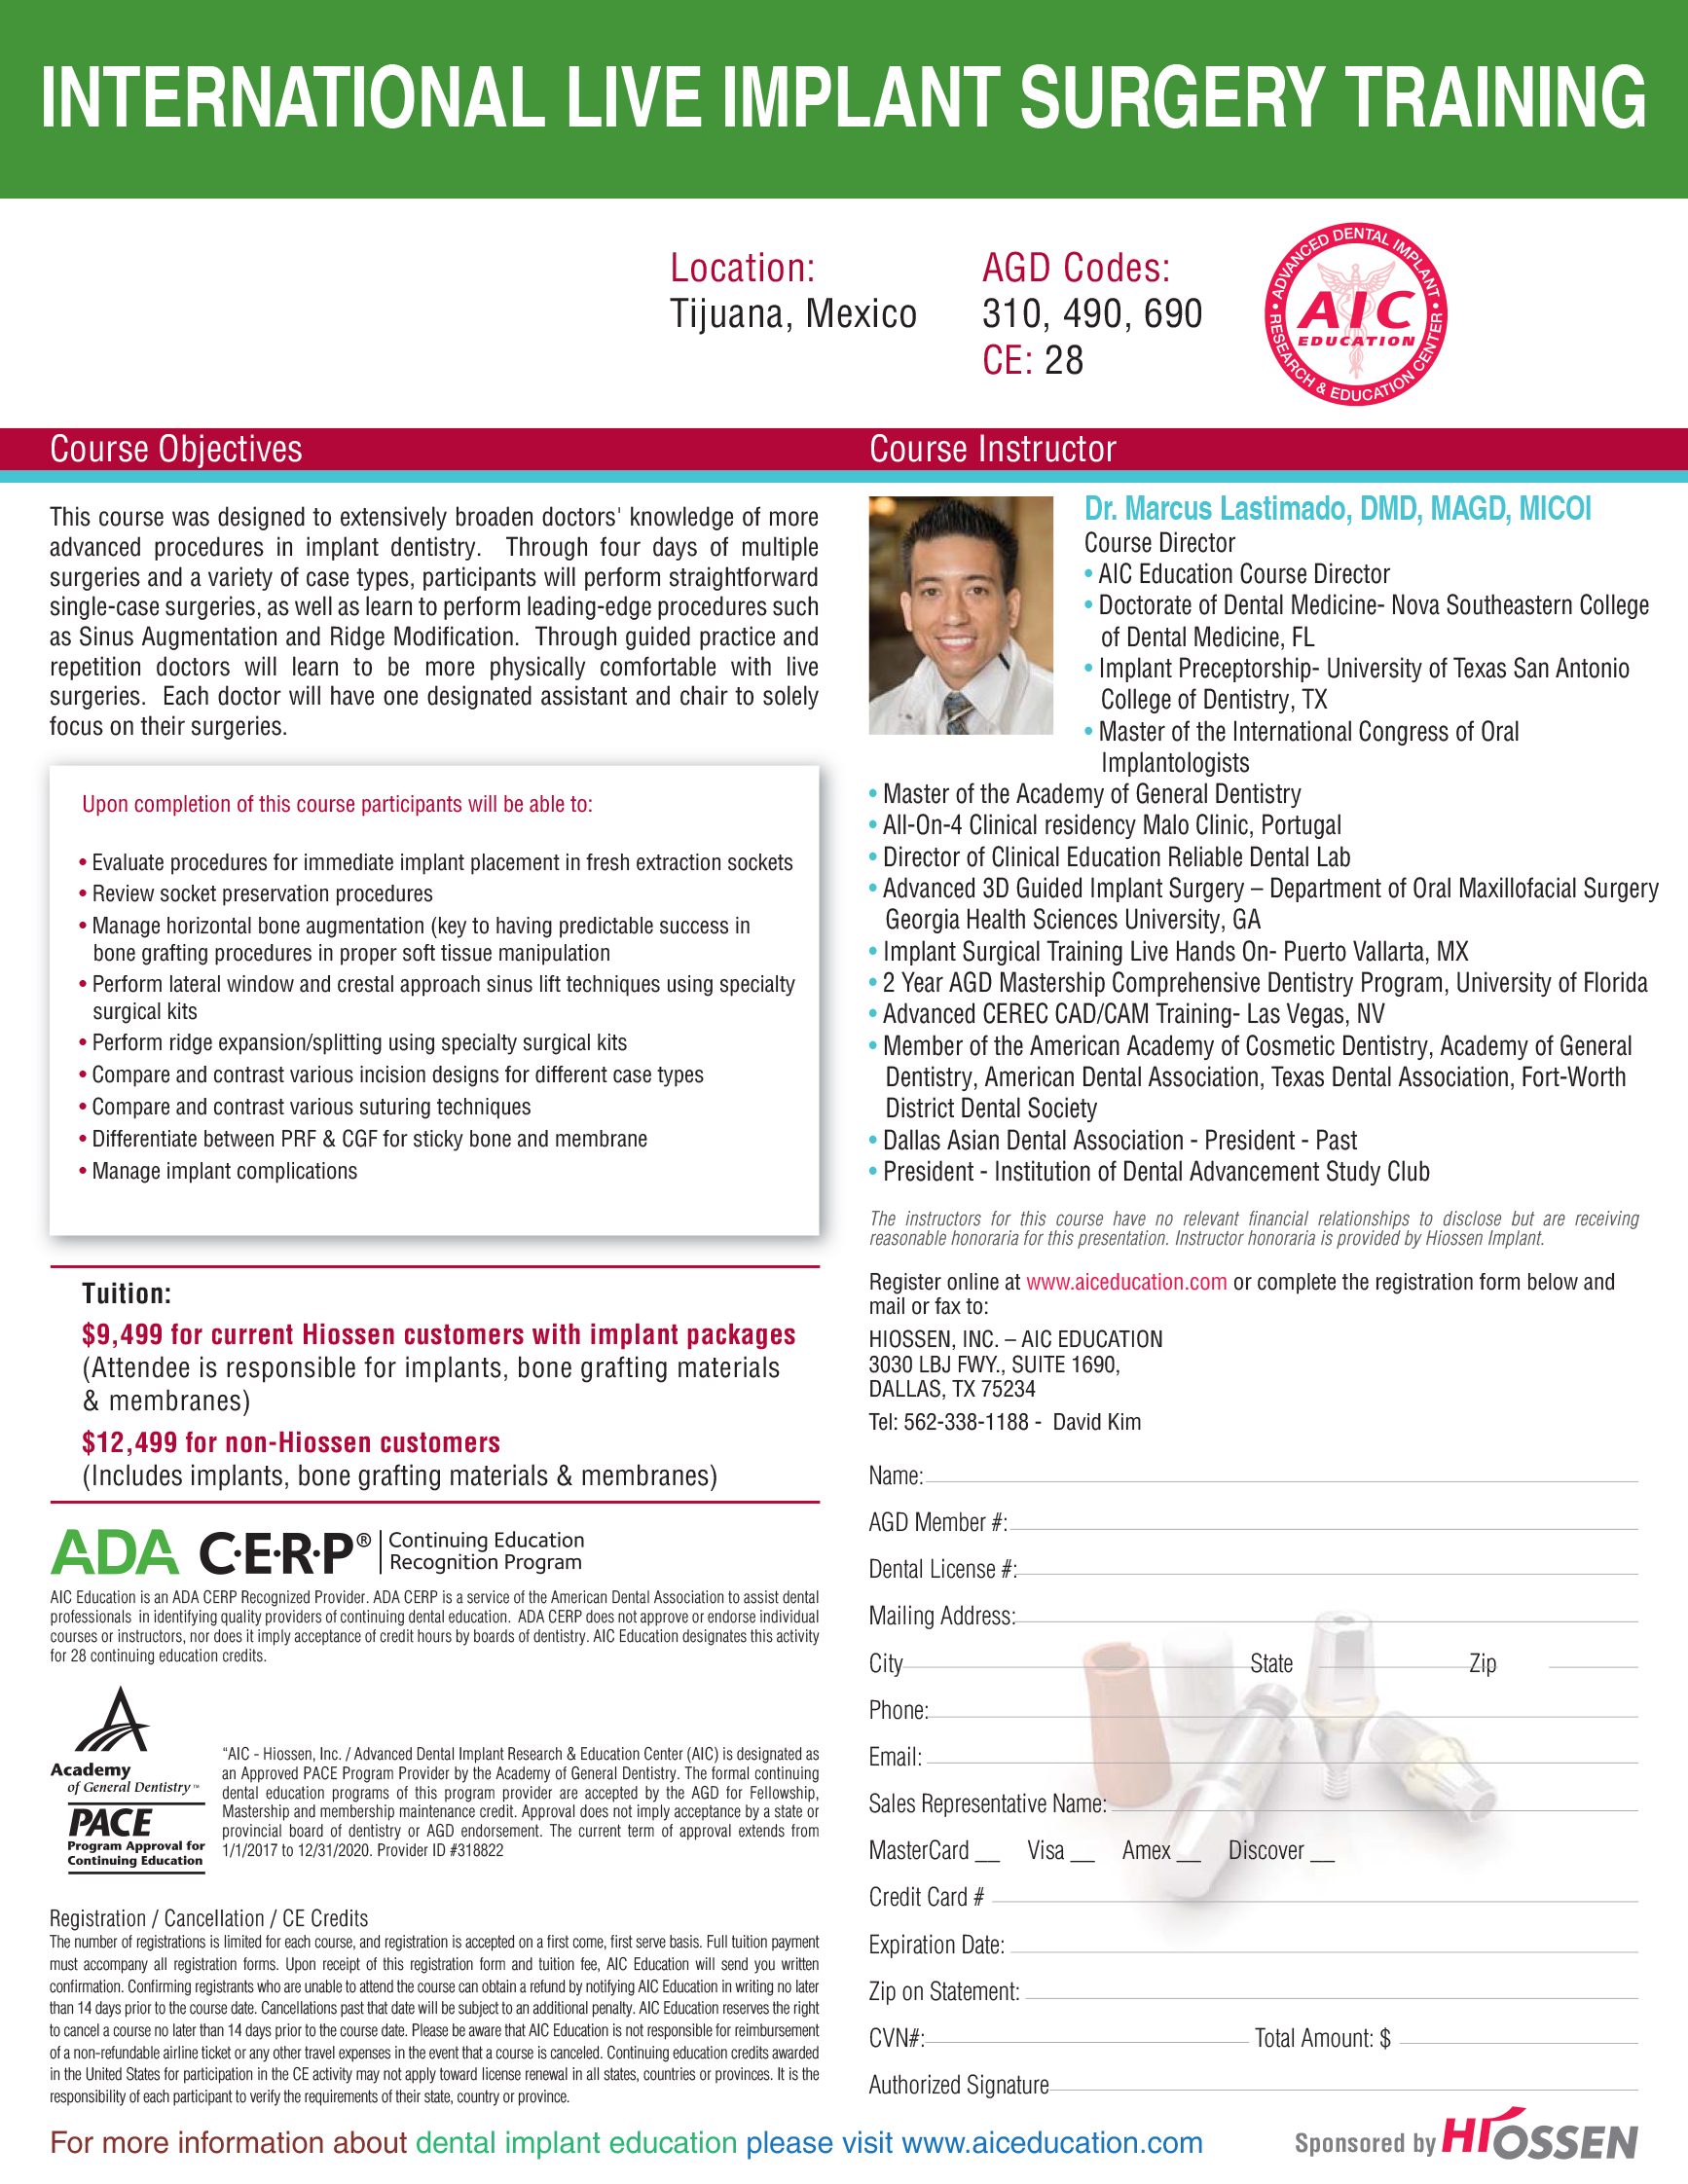 advanced international live patient implant training in Mexico 4 days